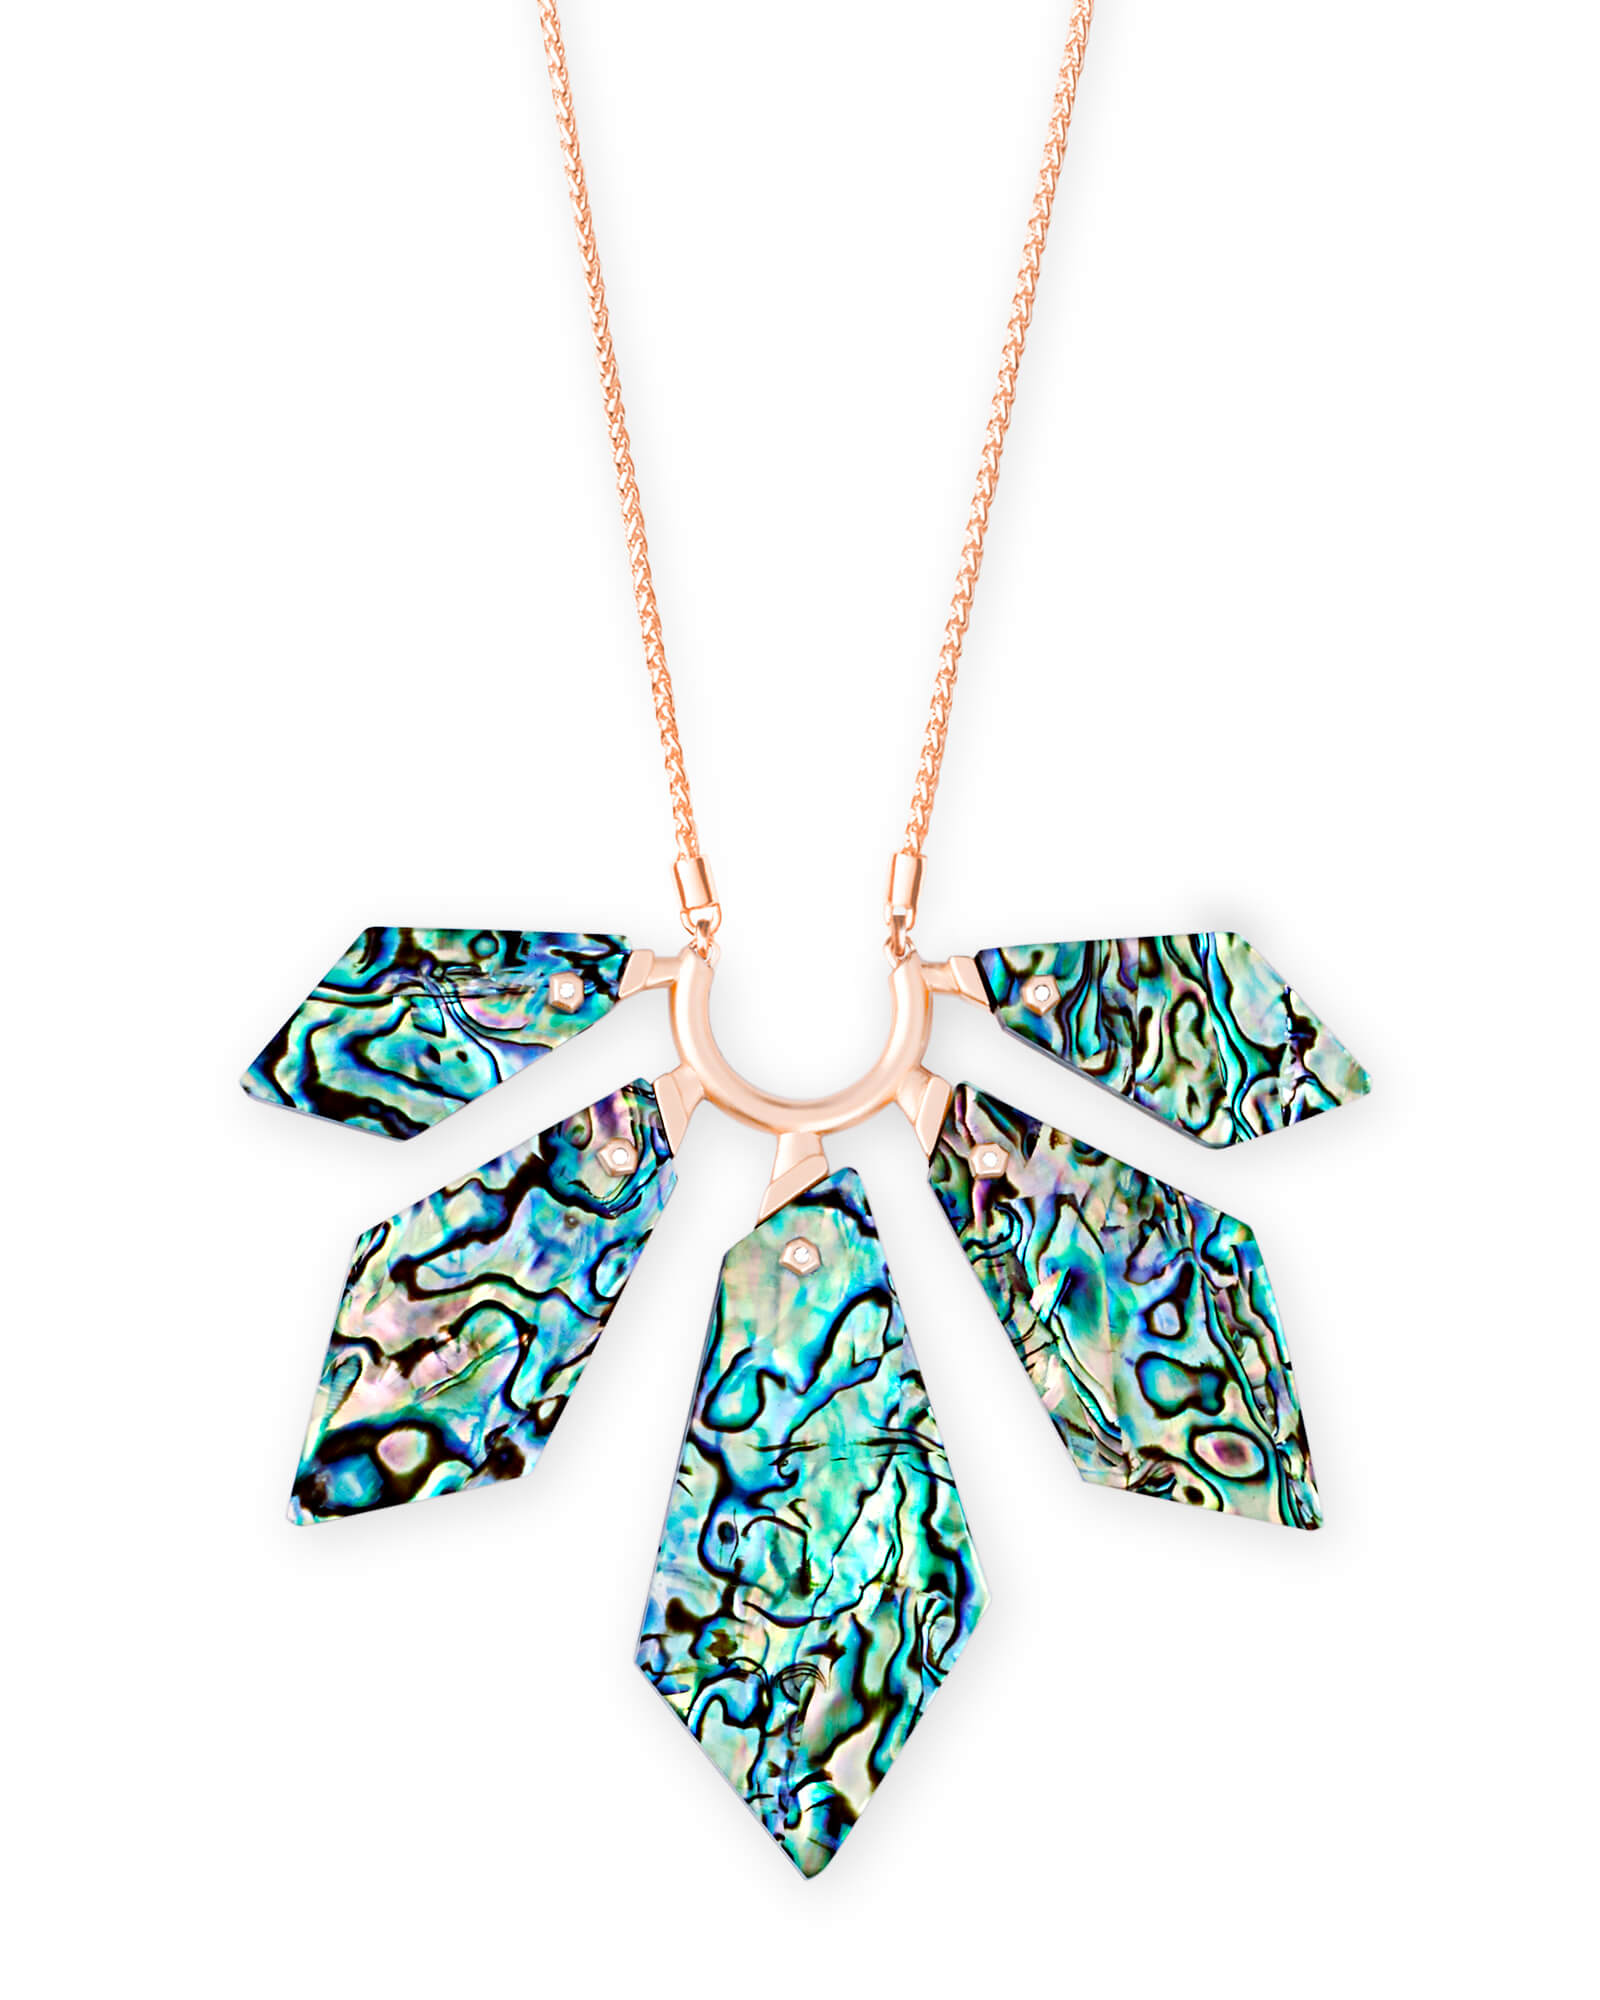 Mari Rose Gold Long Pendant Necklace in Abalone Shell